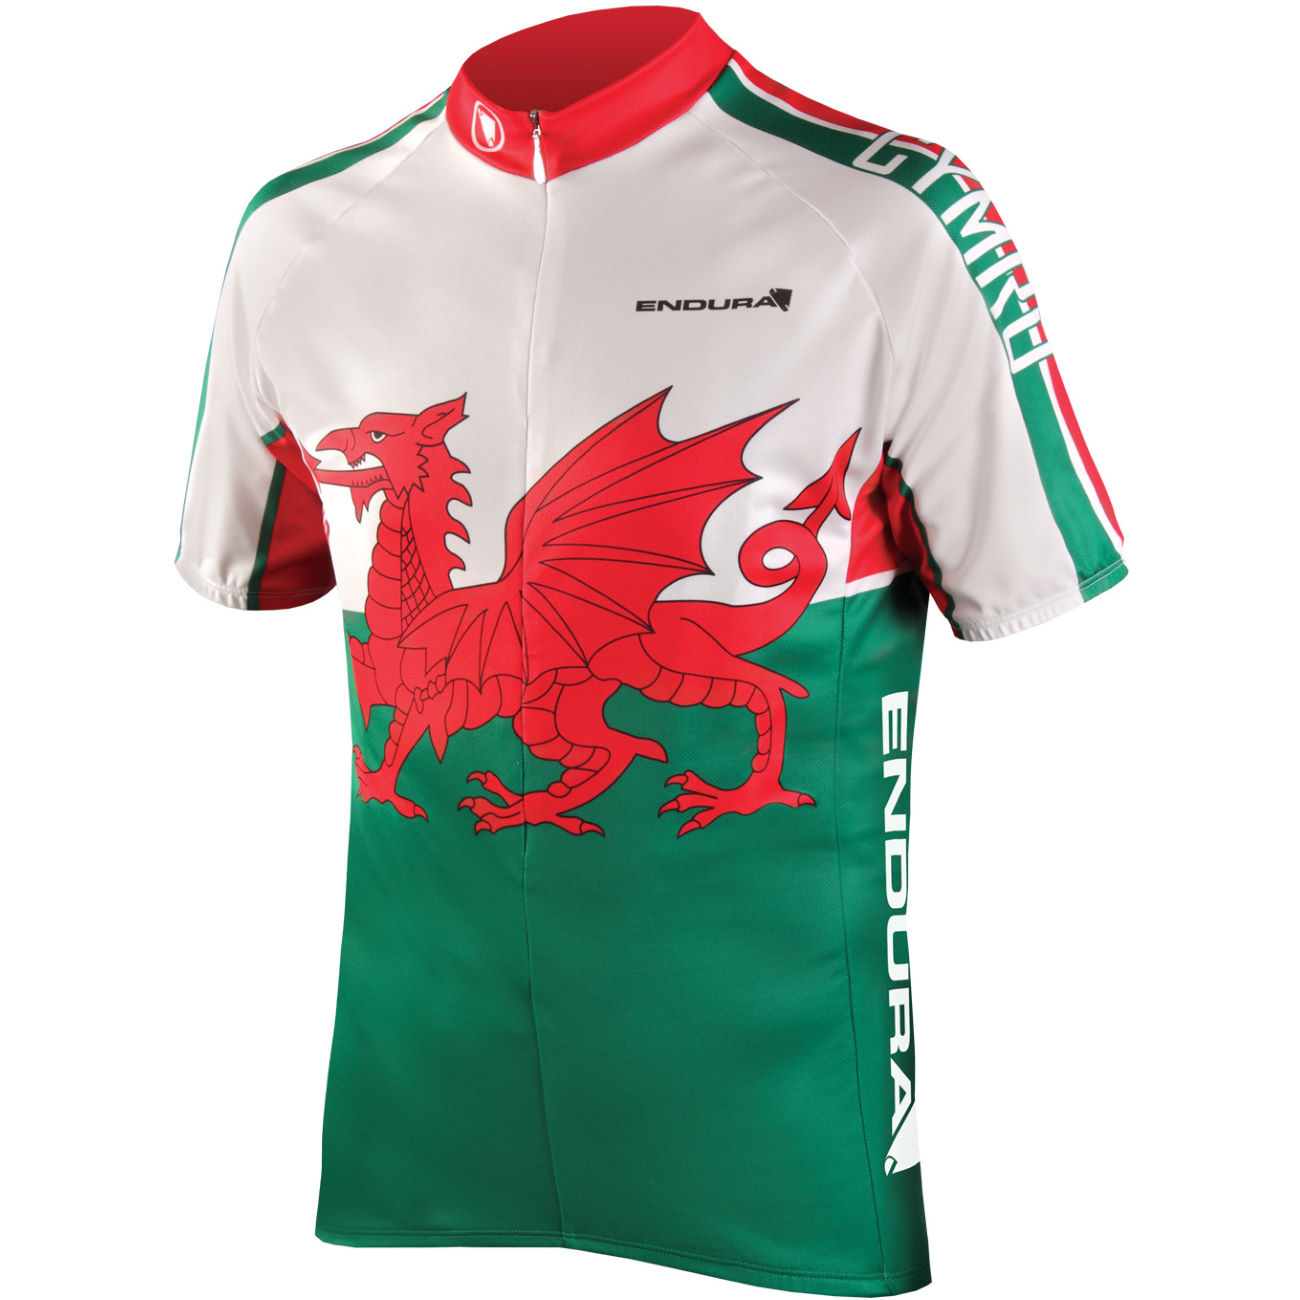 Endura Wales Flag SS Jersey c525c2516